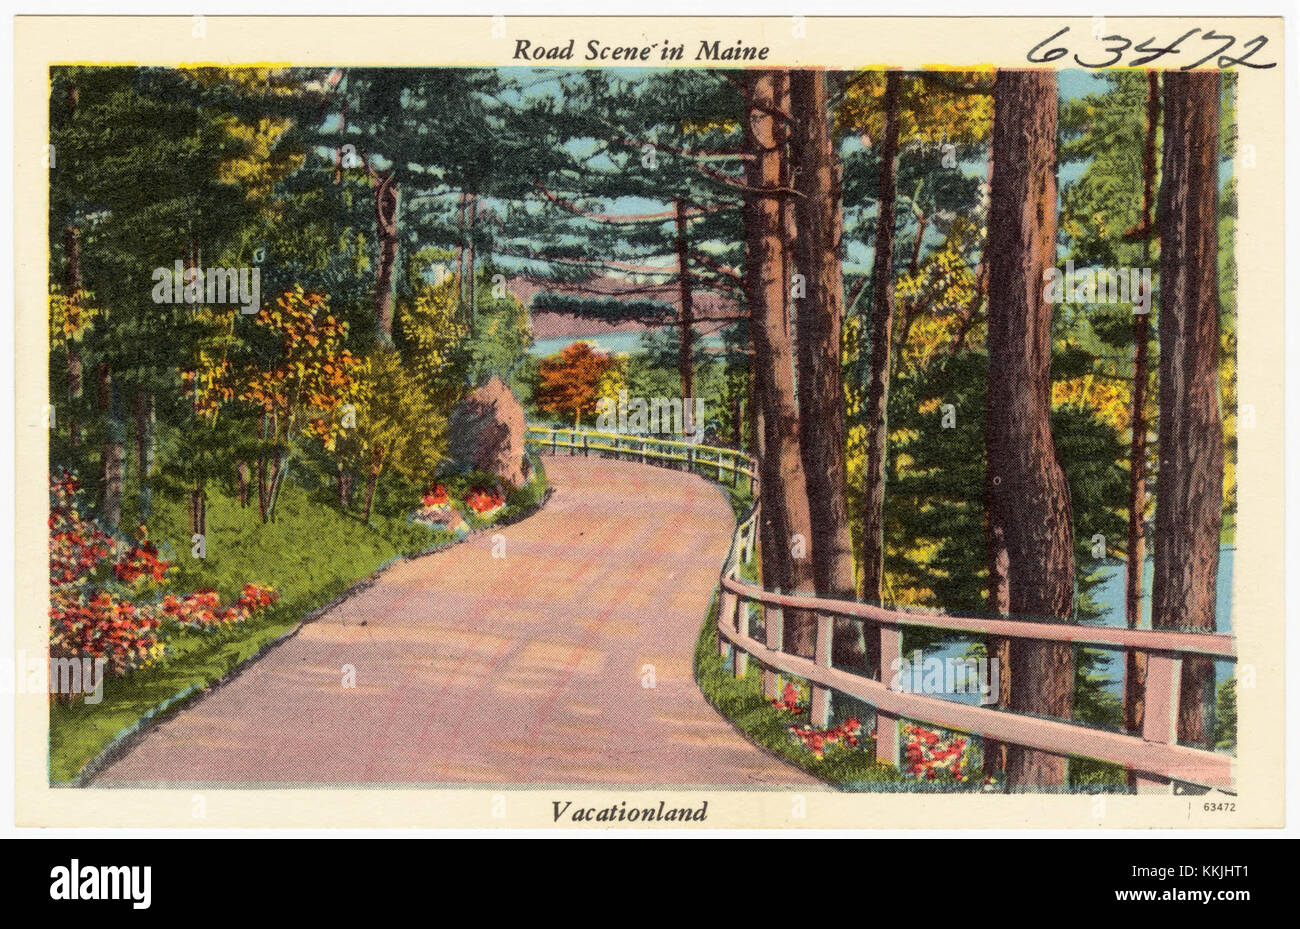 Road scene in Maine, Vacationland (63472) - Stock Image